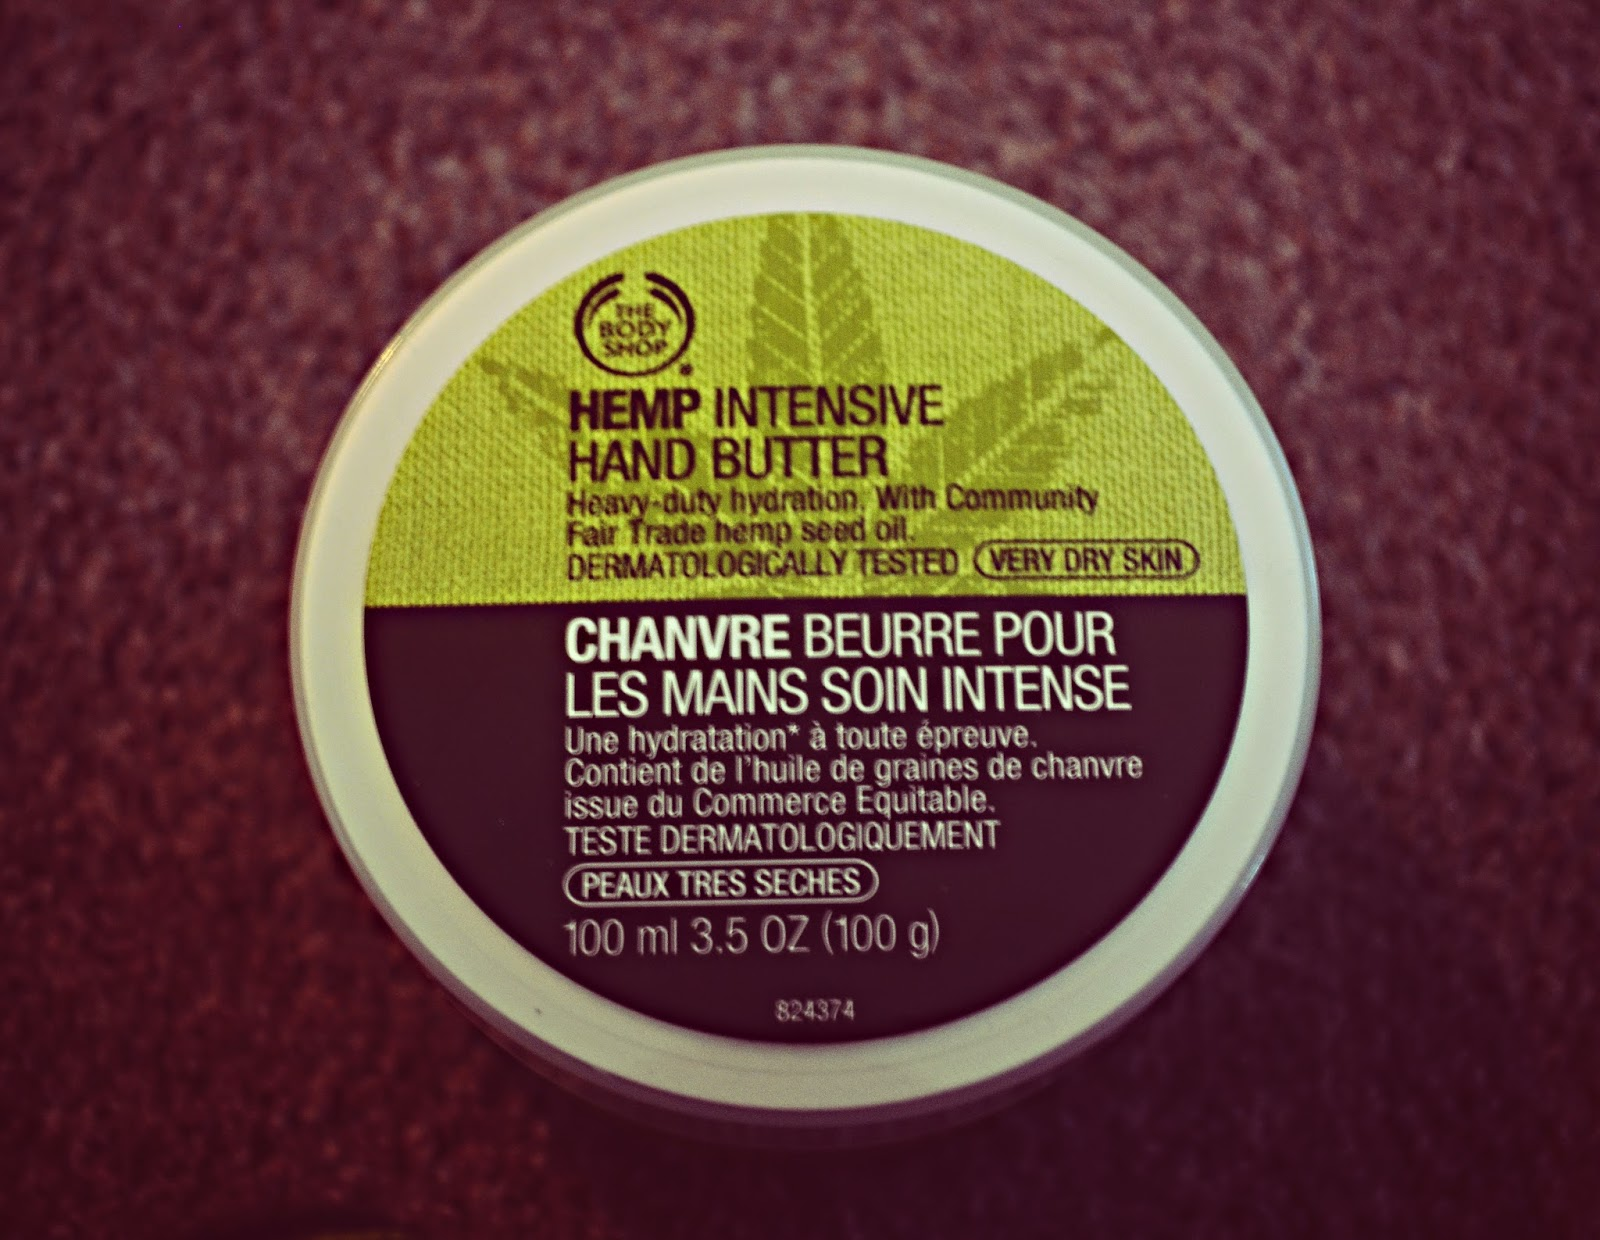 hemp intensive hand butter, hemp, body shop, body shop haul, Stephi, stephi lareine, lareine, fashion, fashion blog, fashion blogger, uk fashion blogger, beauty blogger, beauty blog, uk beauty blog, life style blog, lifestyle blogger, uk lifestyle blog, northwest uk, photographer, graphic designer, motel, motelrocks, missguided, ax paris, topshop, urban outfitters, new look, primark, lfw, Liverpool, portrait fashion, lookbook, tumblr, pinterest, twitter, facebook, bloglovin, pastel hair, vintage, diy, nail art, ootd